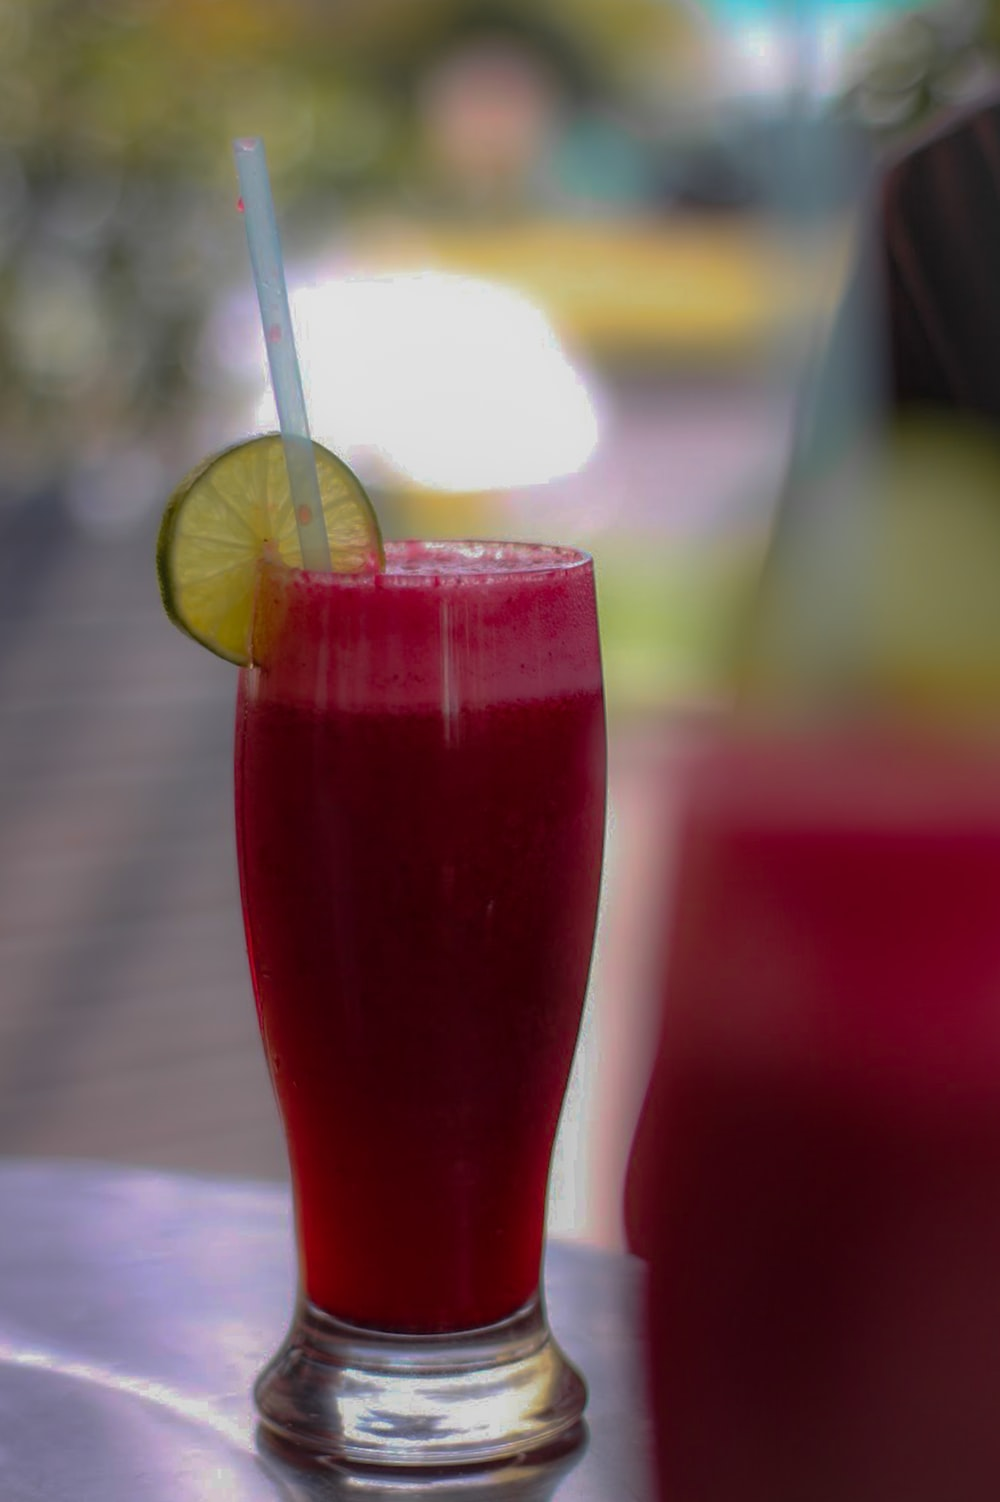 red liquid in clear drinking glass with sliced lemon